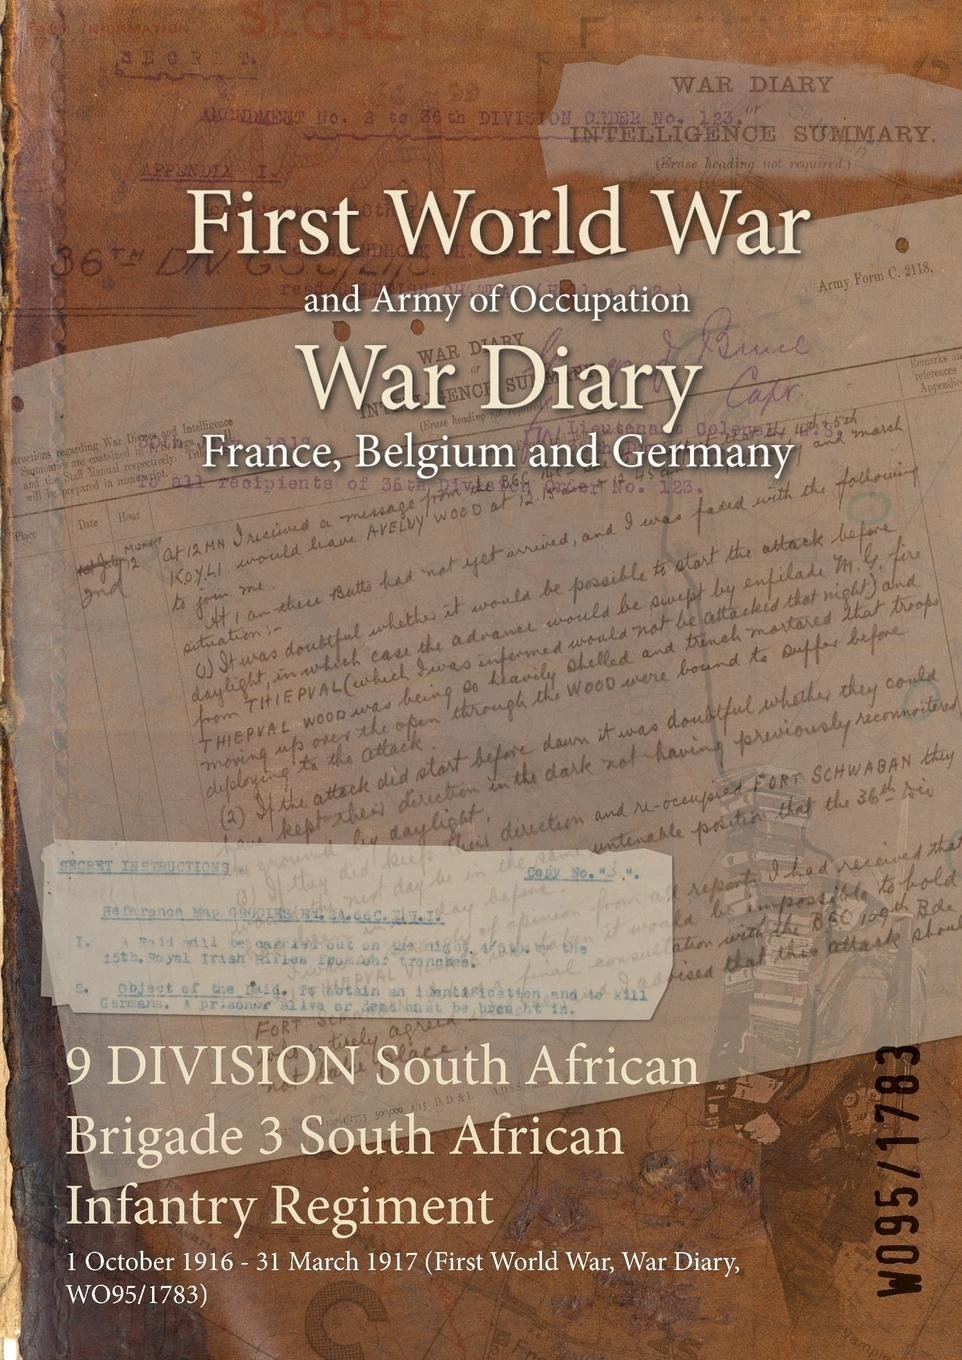 Download 9 Division South African Brigade 3 South African Infantry Regiment: 1 October 1916 - 31 March 1917 (First World War, War Diary, Wo95/1783) PDF